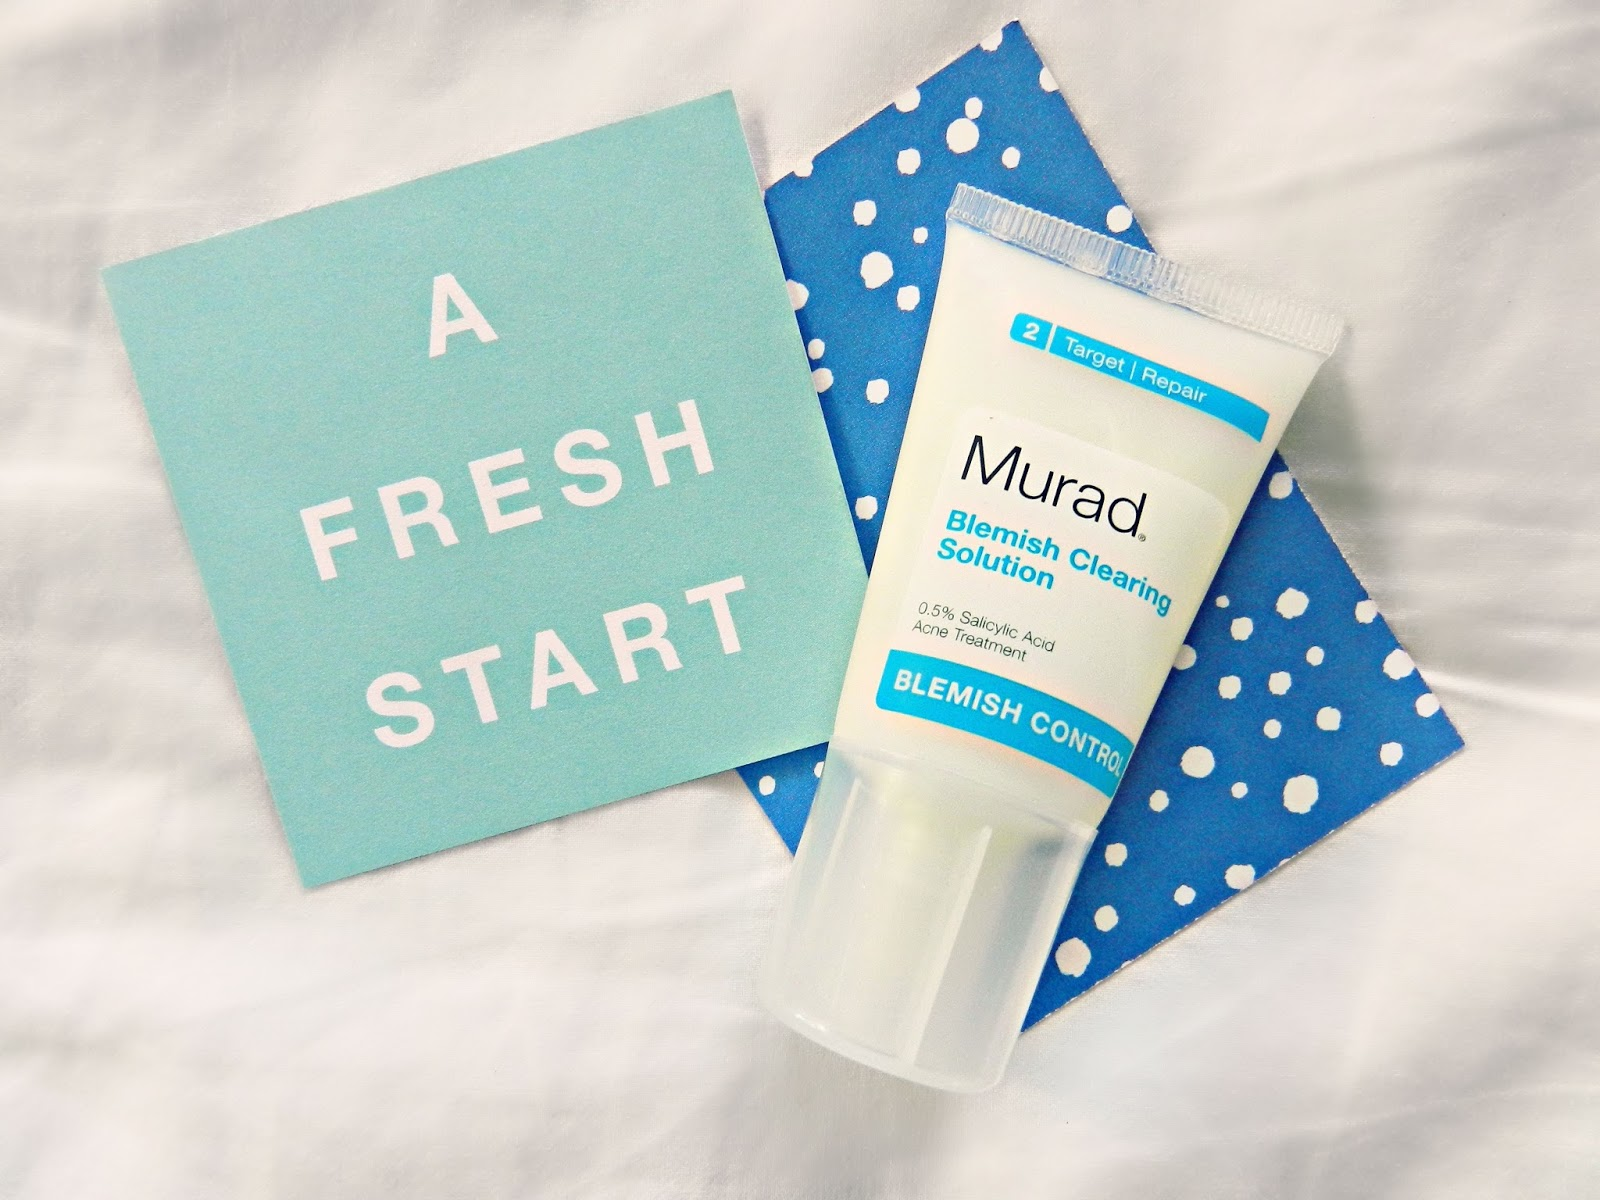 murad blemish control travel set review blemish clearing solution sephora